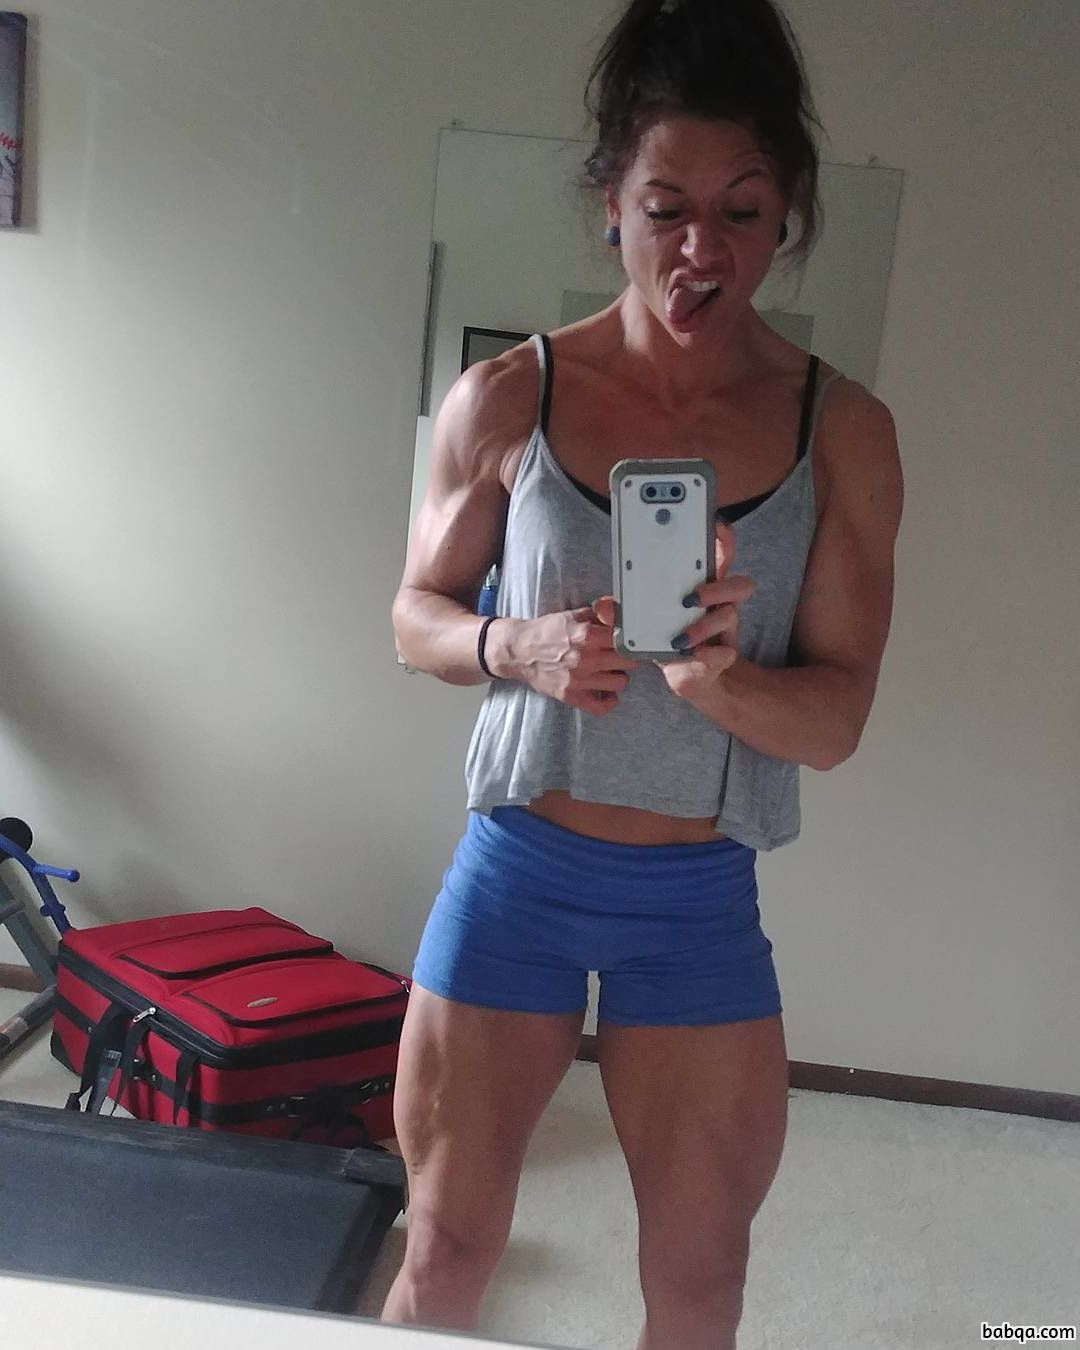 sexy woman with muscle body and toned arms post from reddit